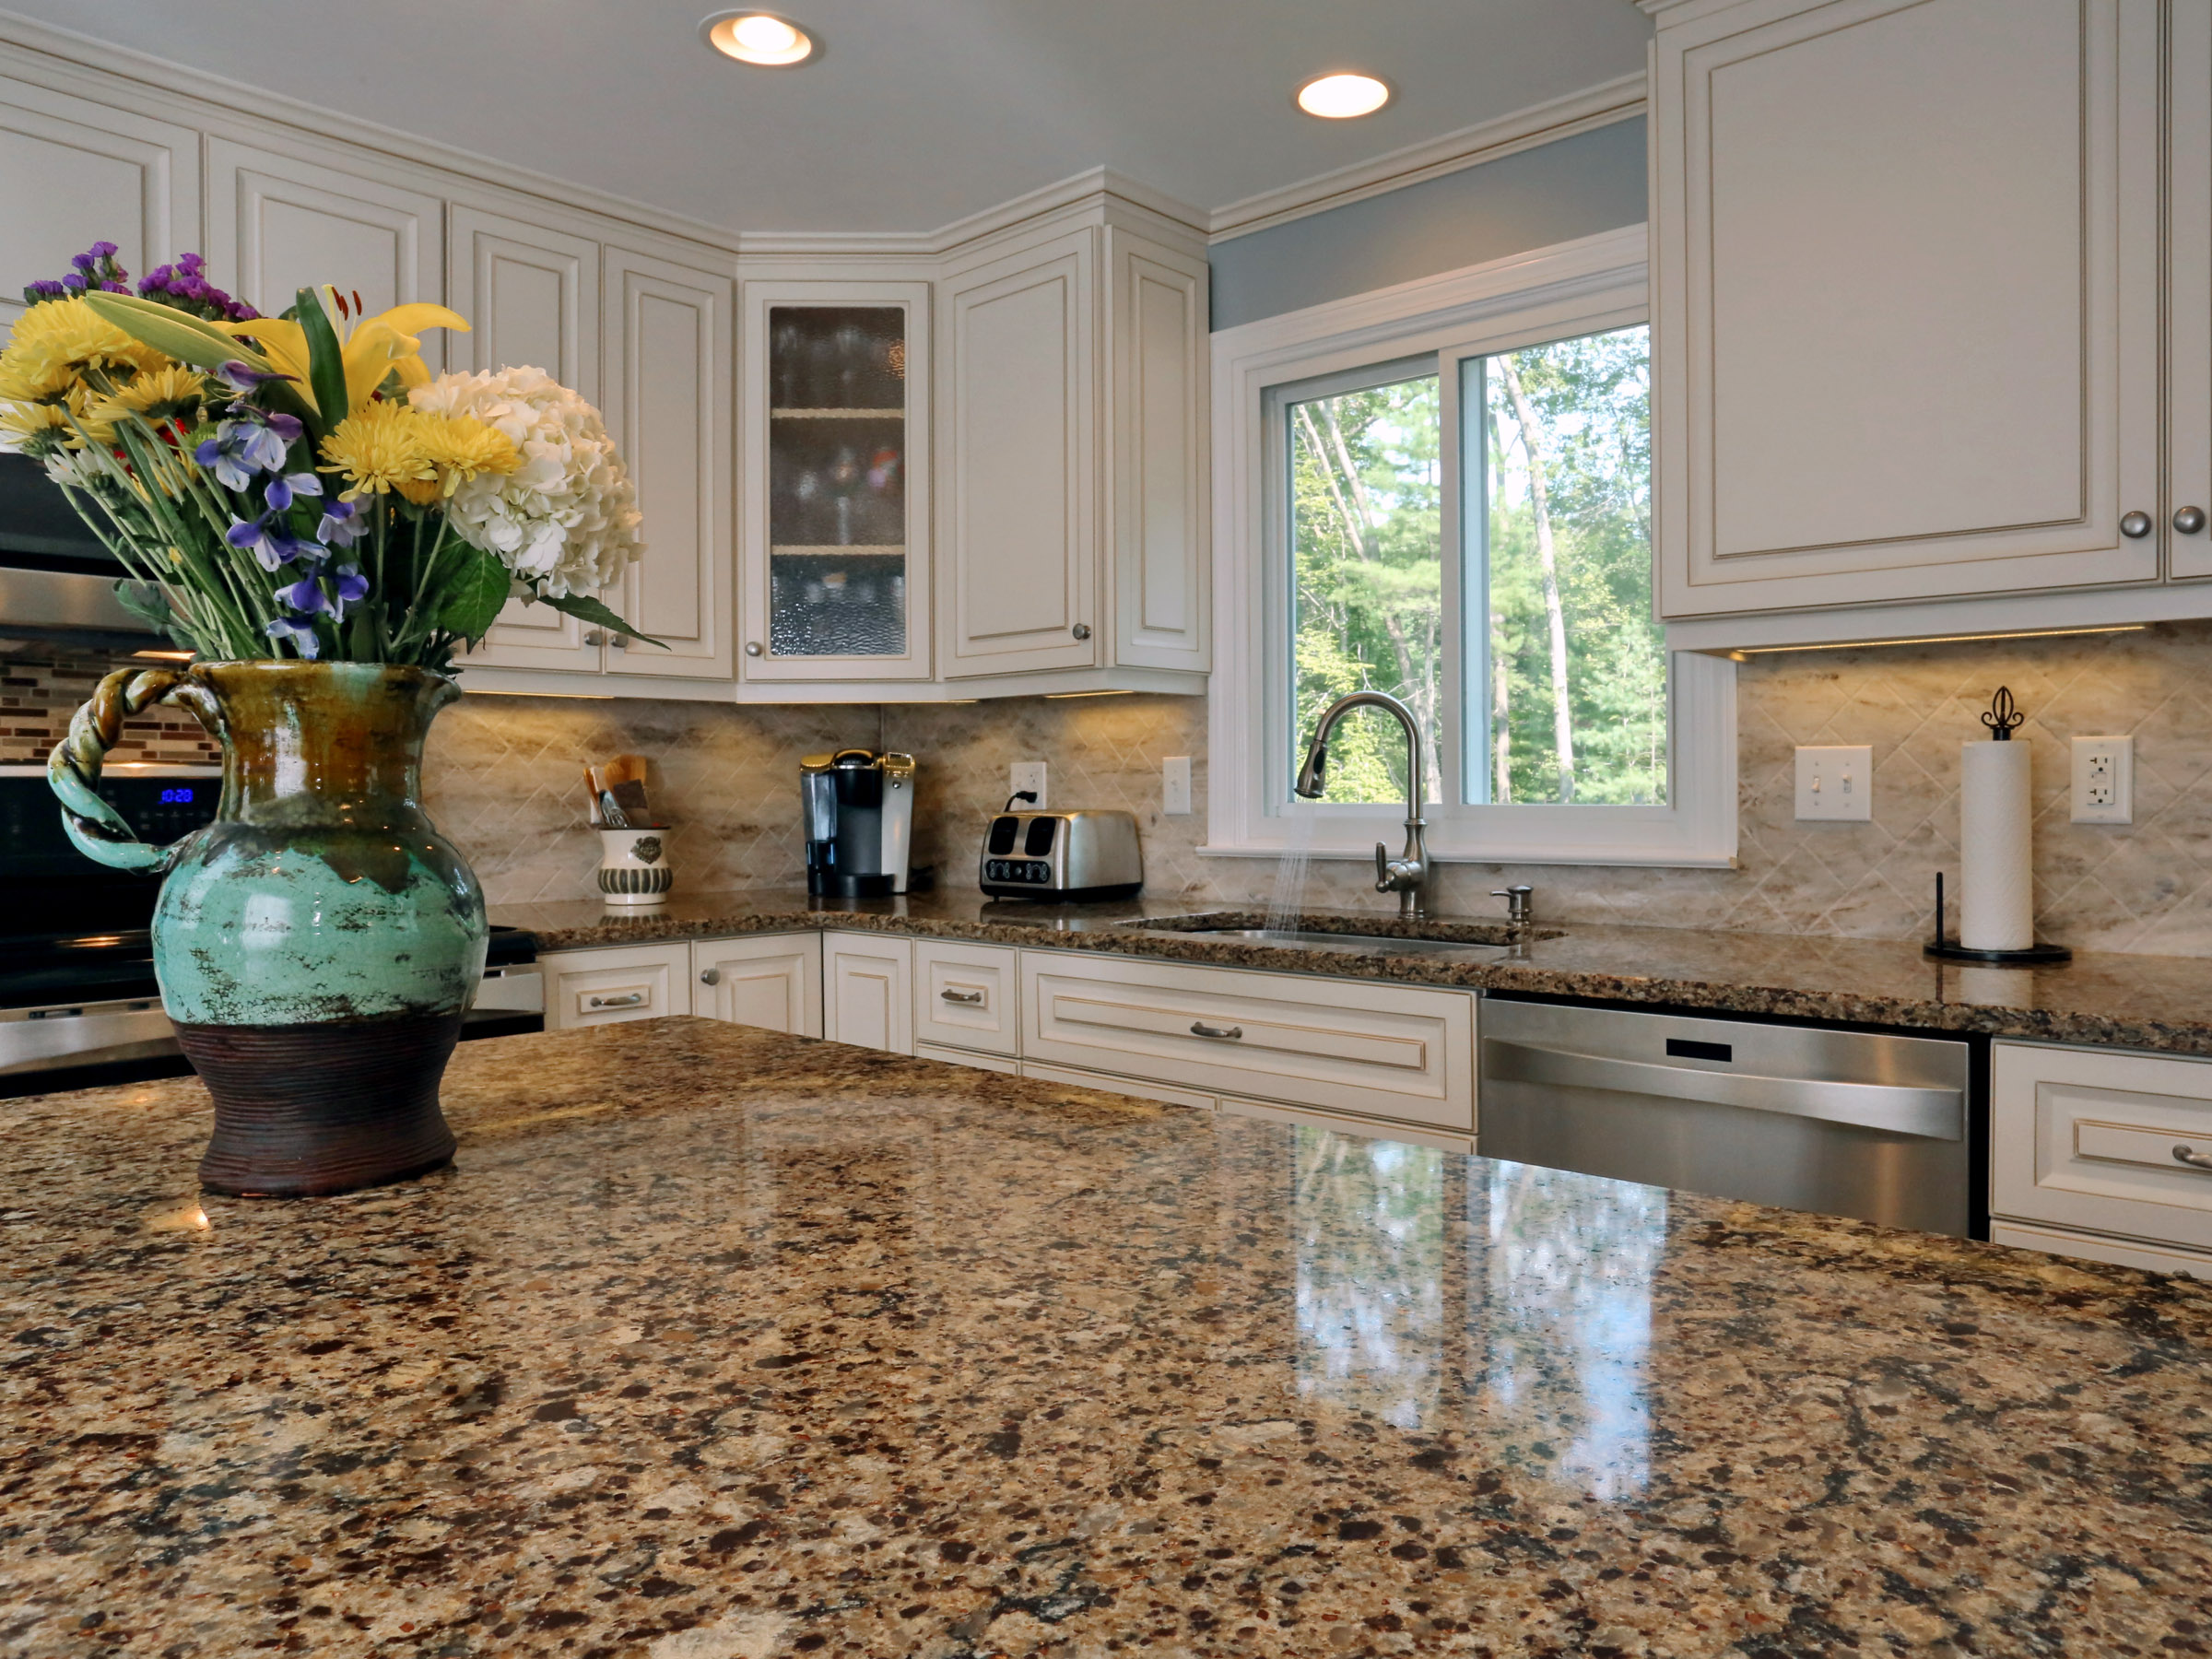 The real focal point of this kitchen both in durability and style is